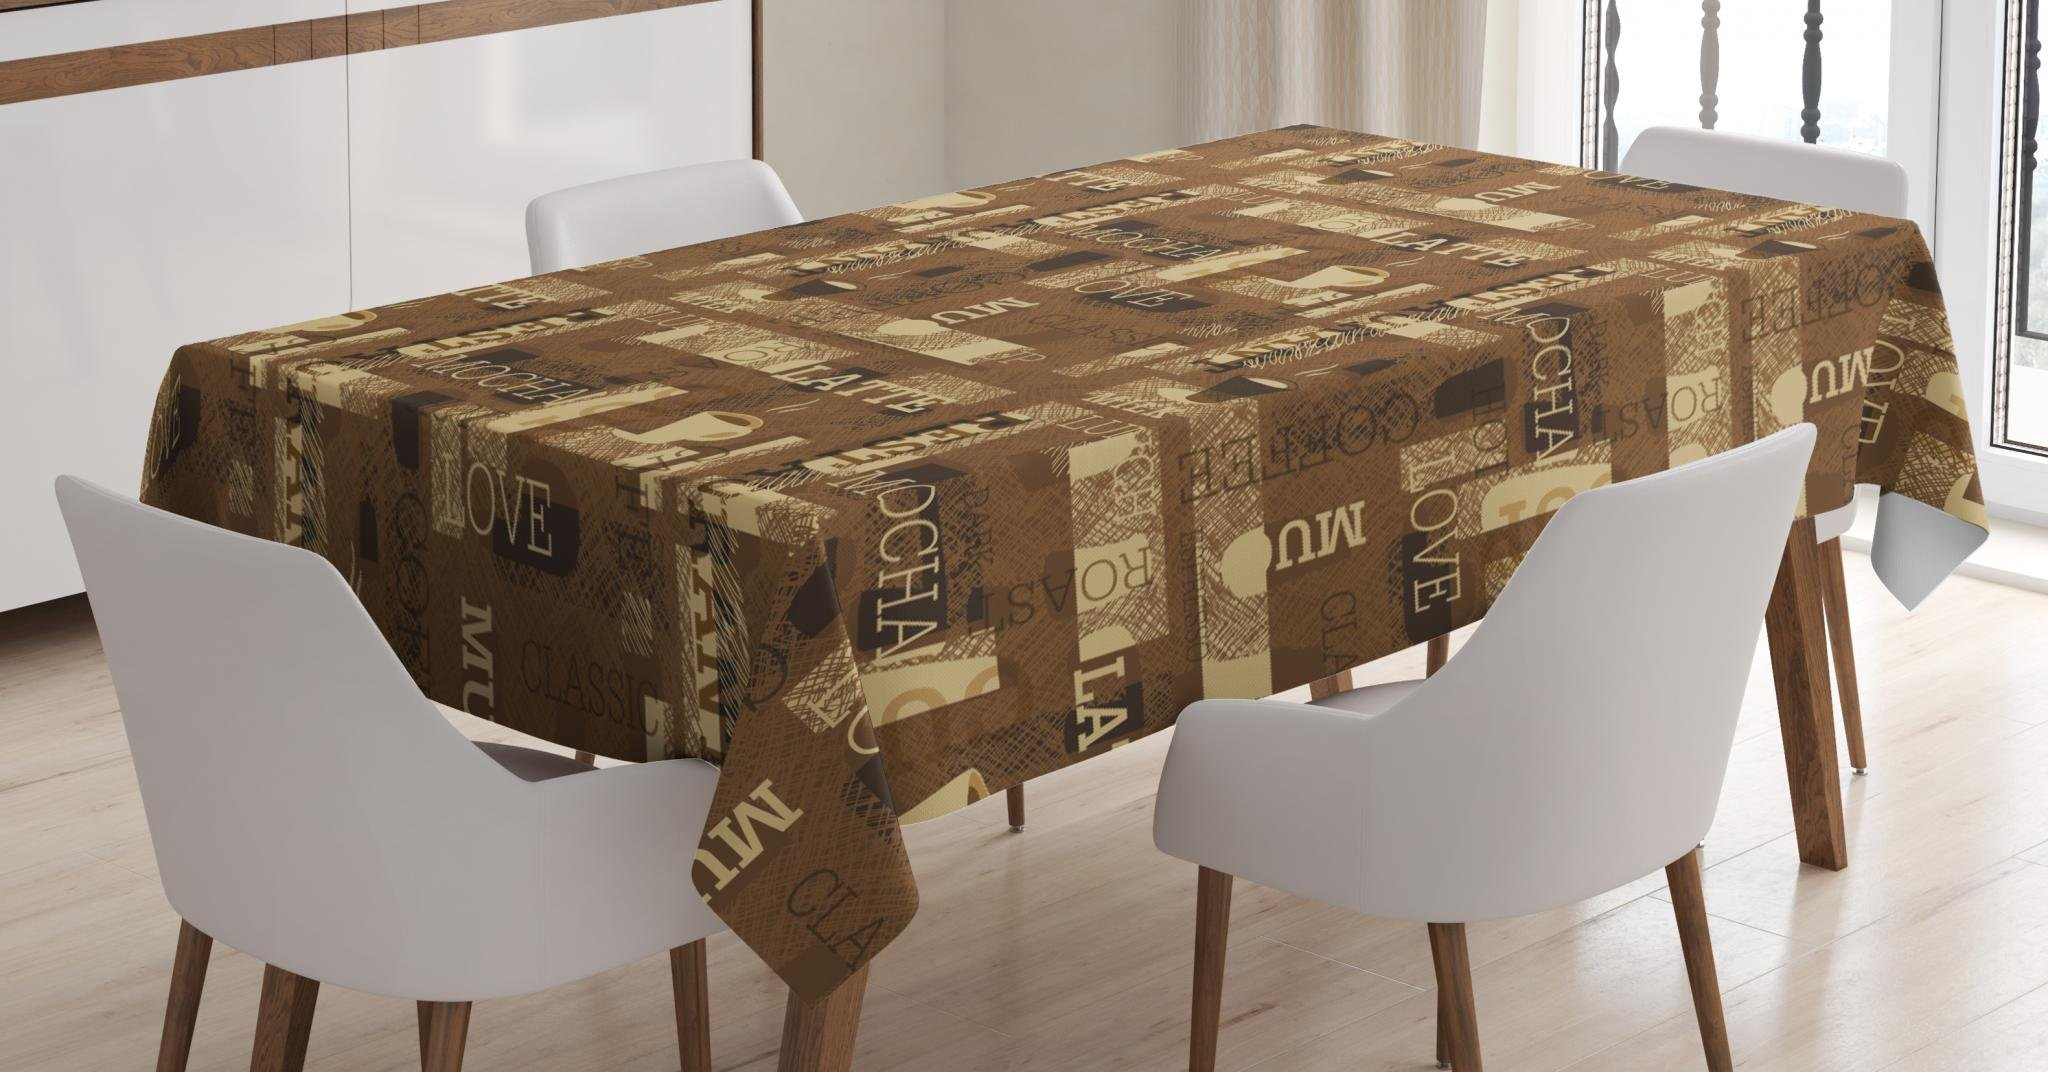 Ambesonne Coffee Tablecloth, Cafeteria Pattern with Hot Mocha Latte Milk Love Typography on Scribble Backdrop, Dining Room Kitchen Rectangular Table Cover, 52 W X 70 L inches, Brown Beige